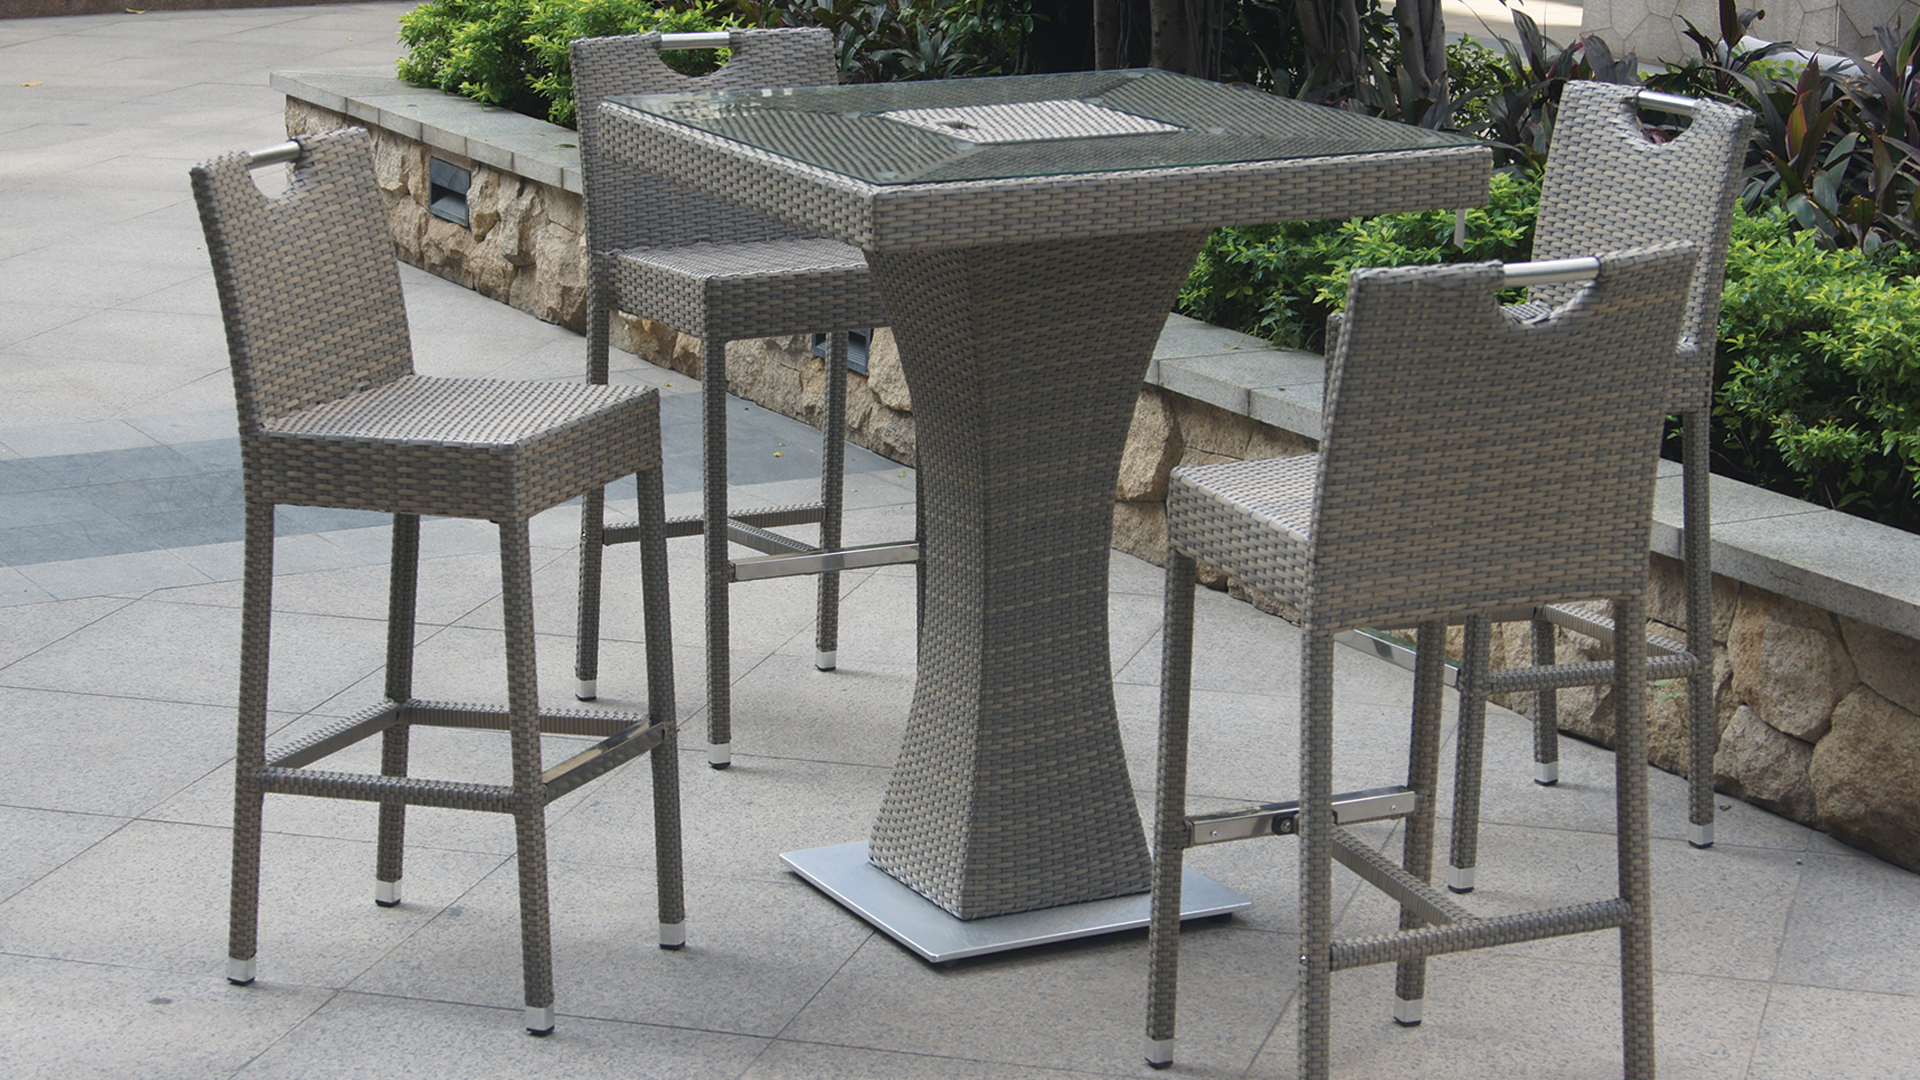 Table de jardin haute | Optimisatrice